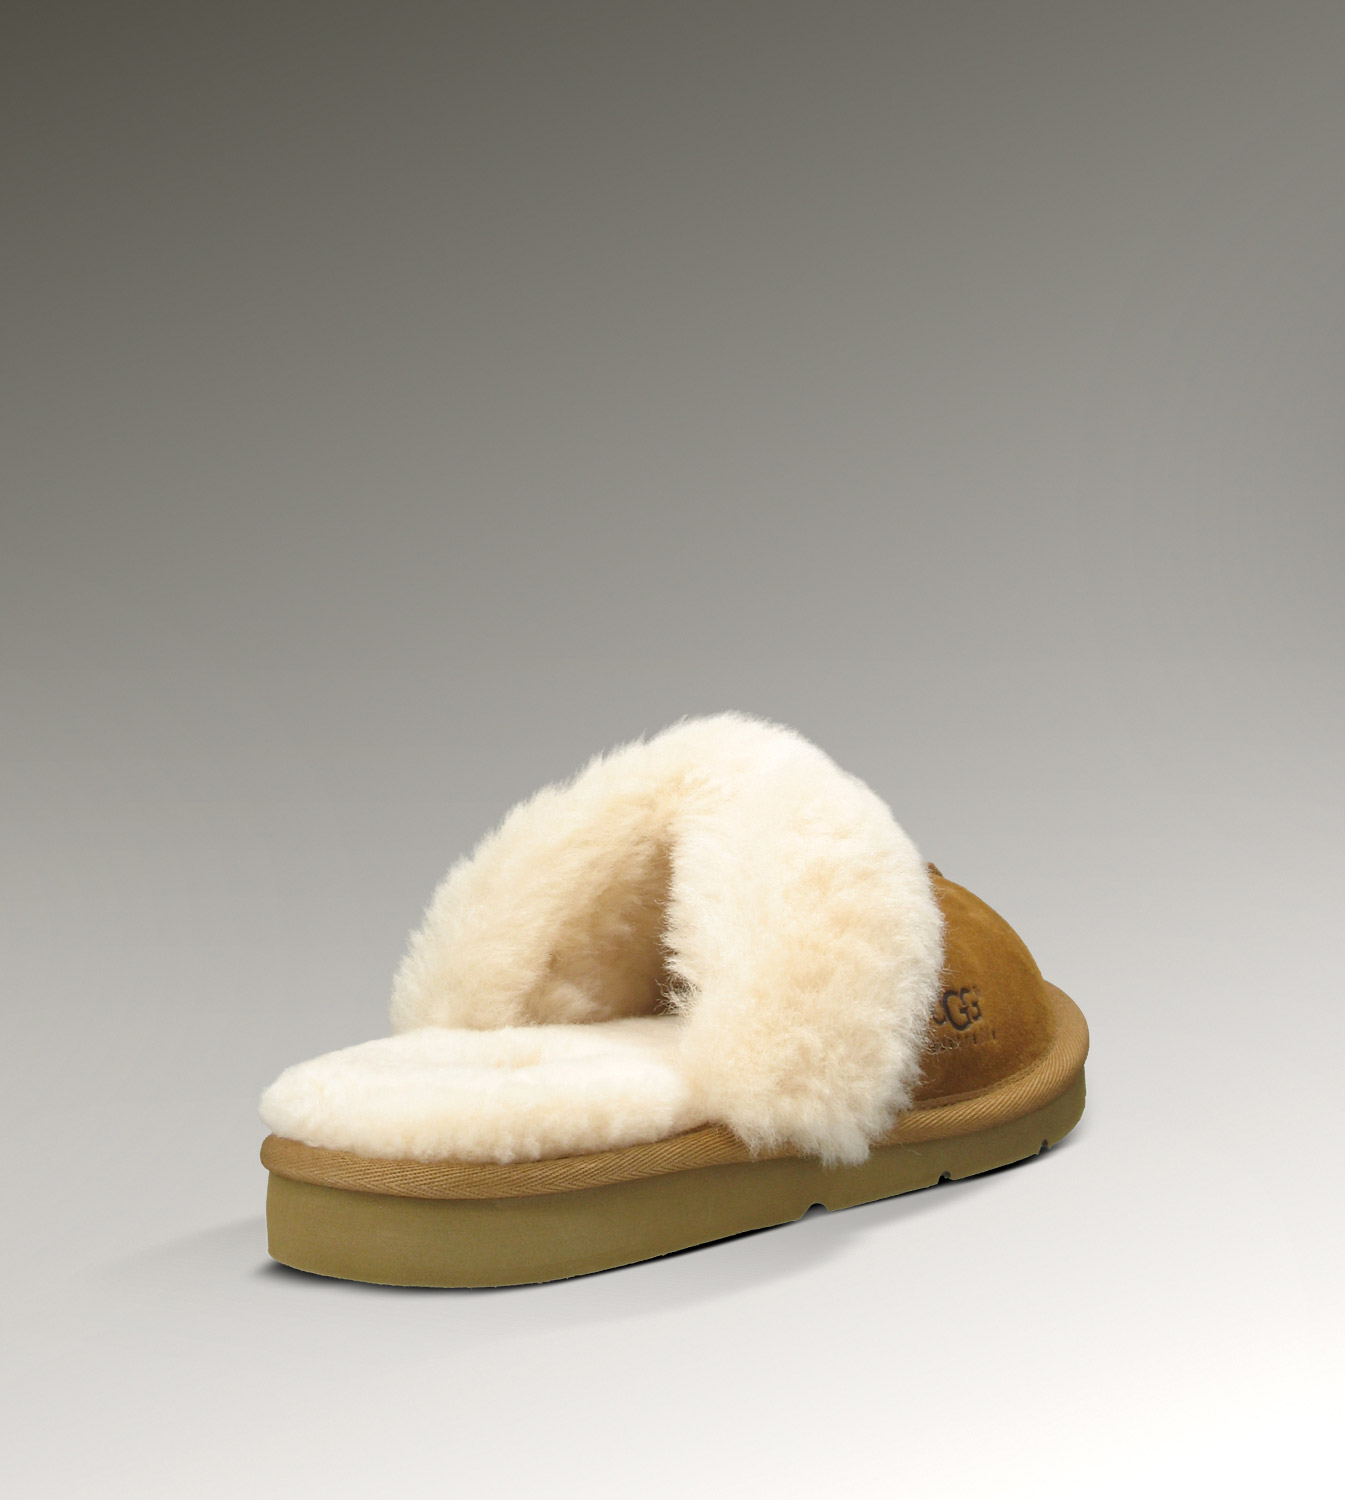 UGG Cozy II 5614 Chestnut Slippers